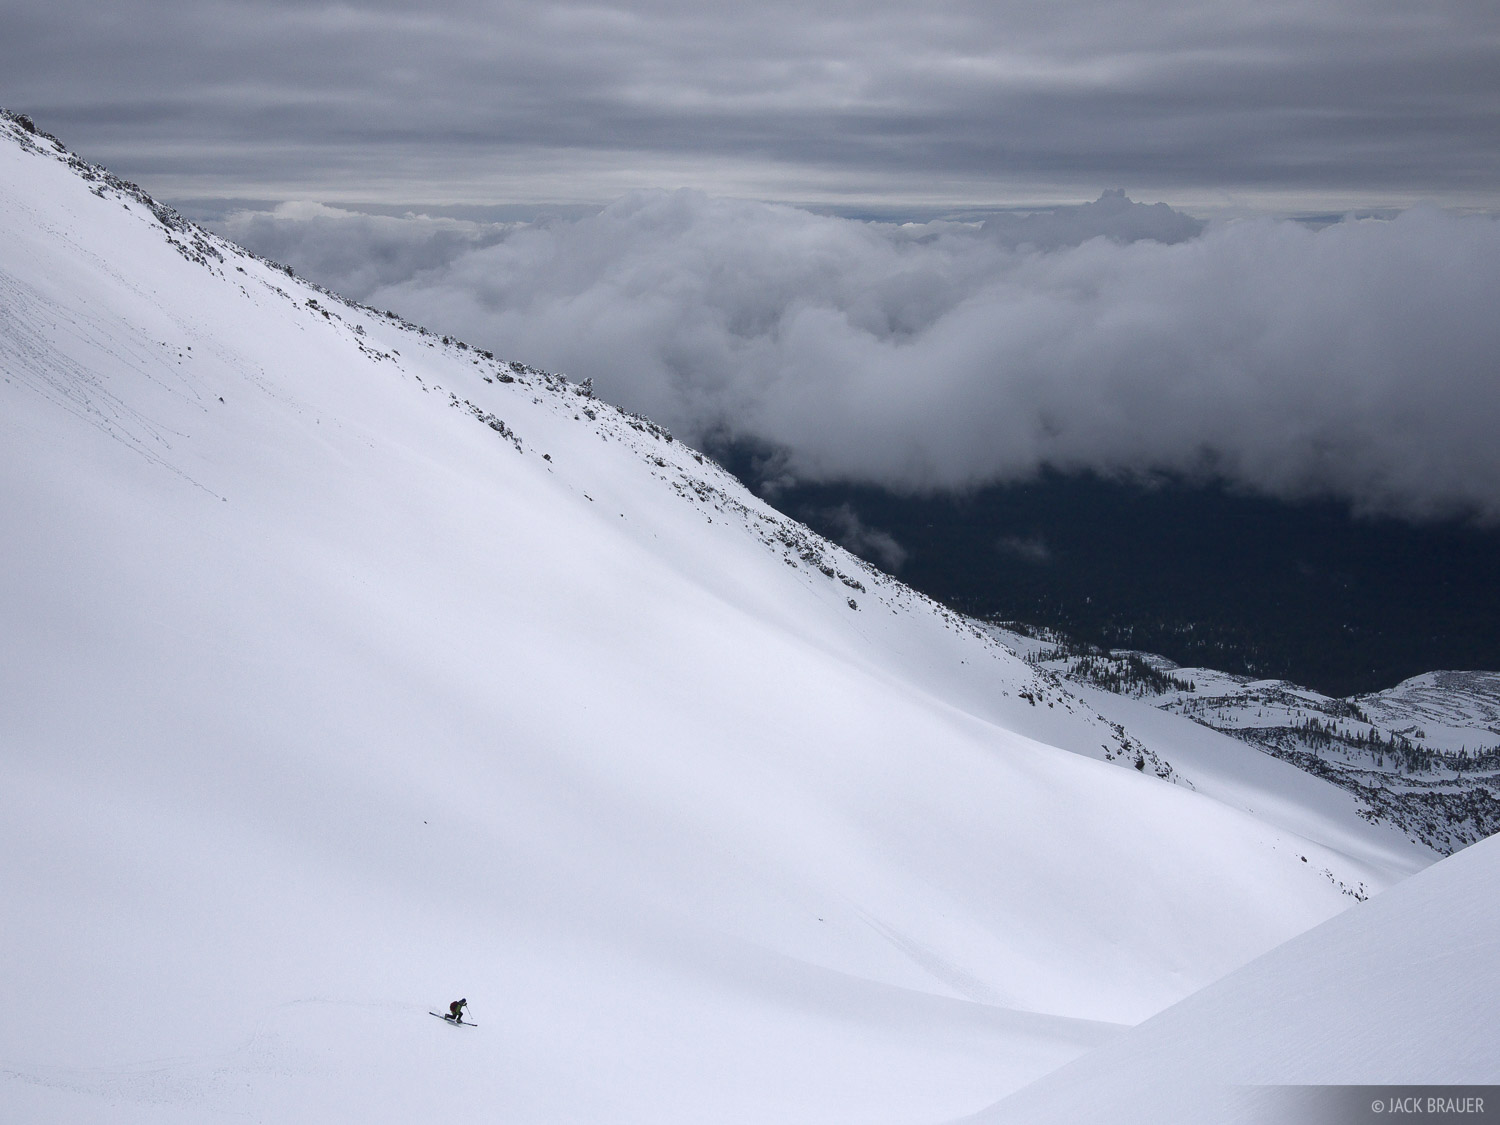 Skiing down Mount Saint Helens